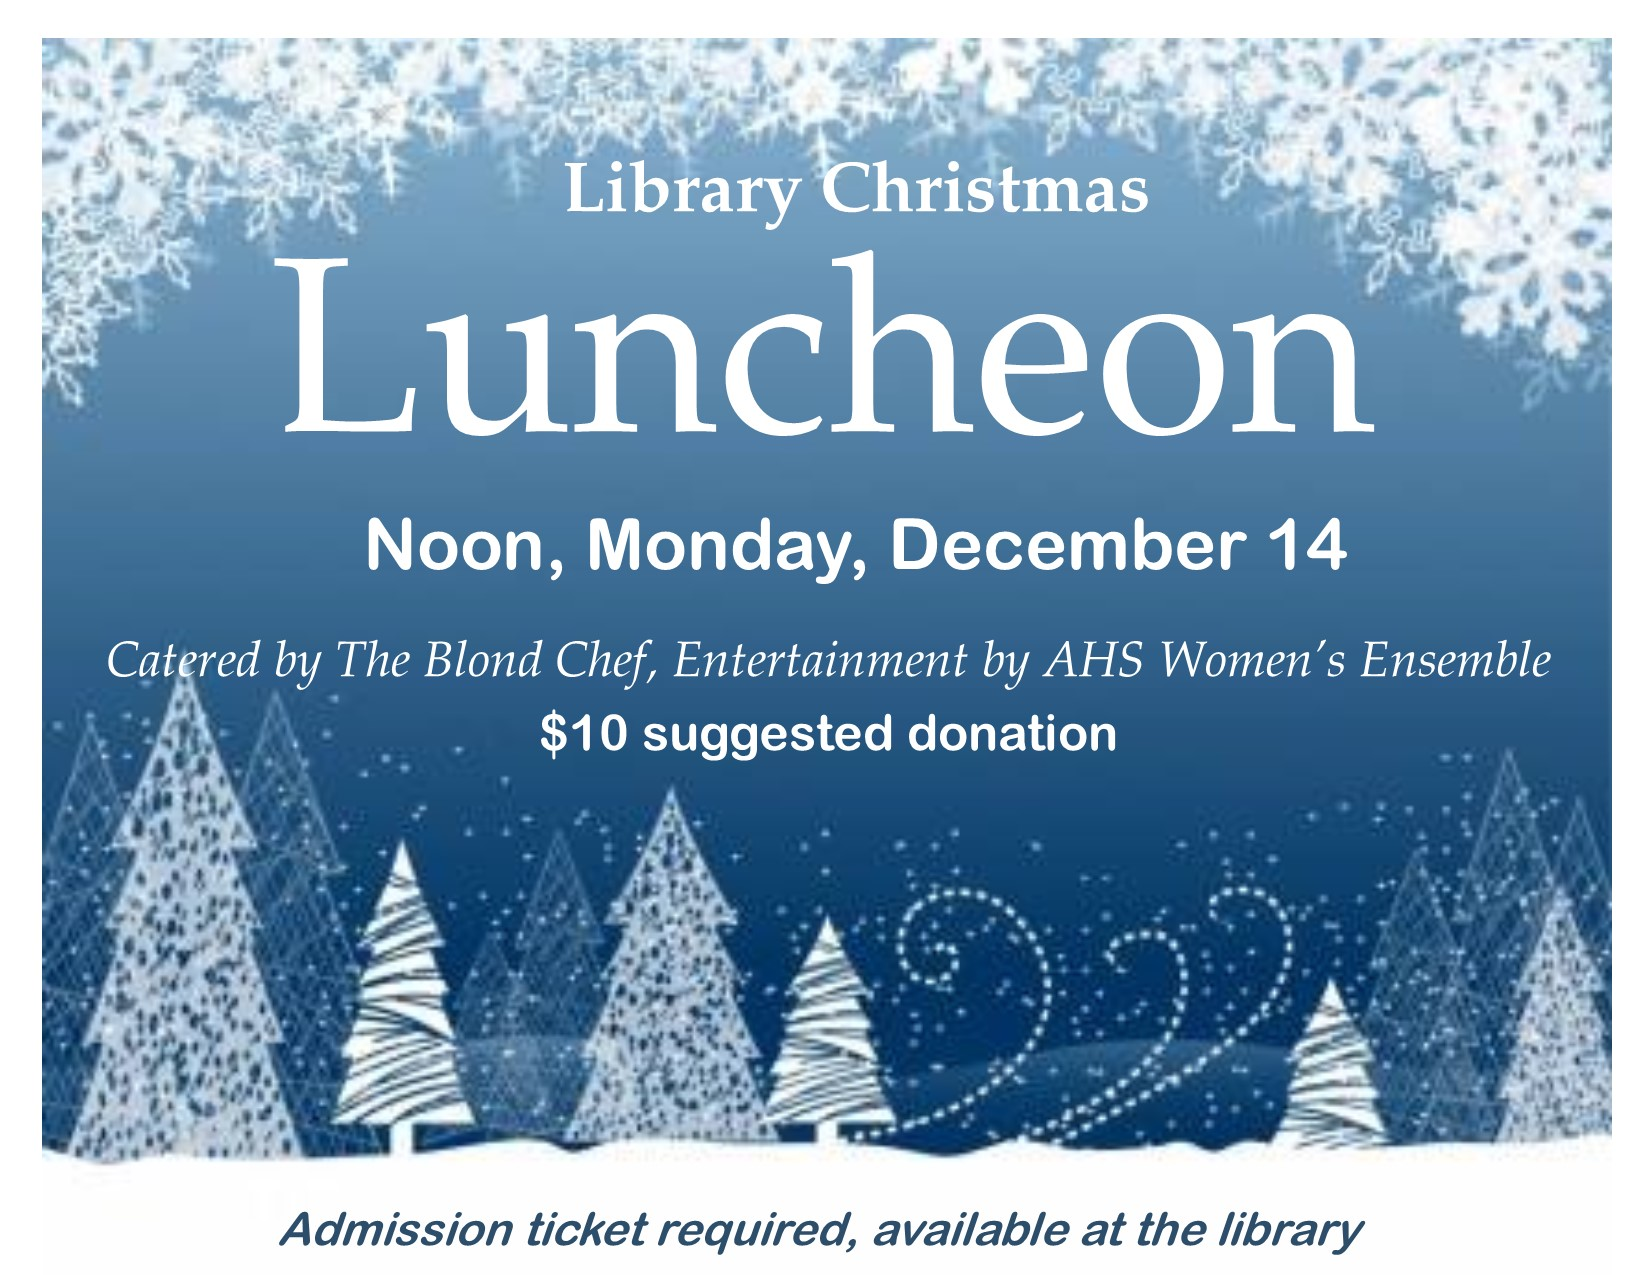 2015 Christmas luncheon poster